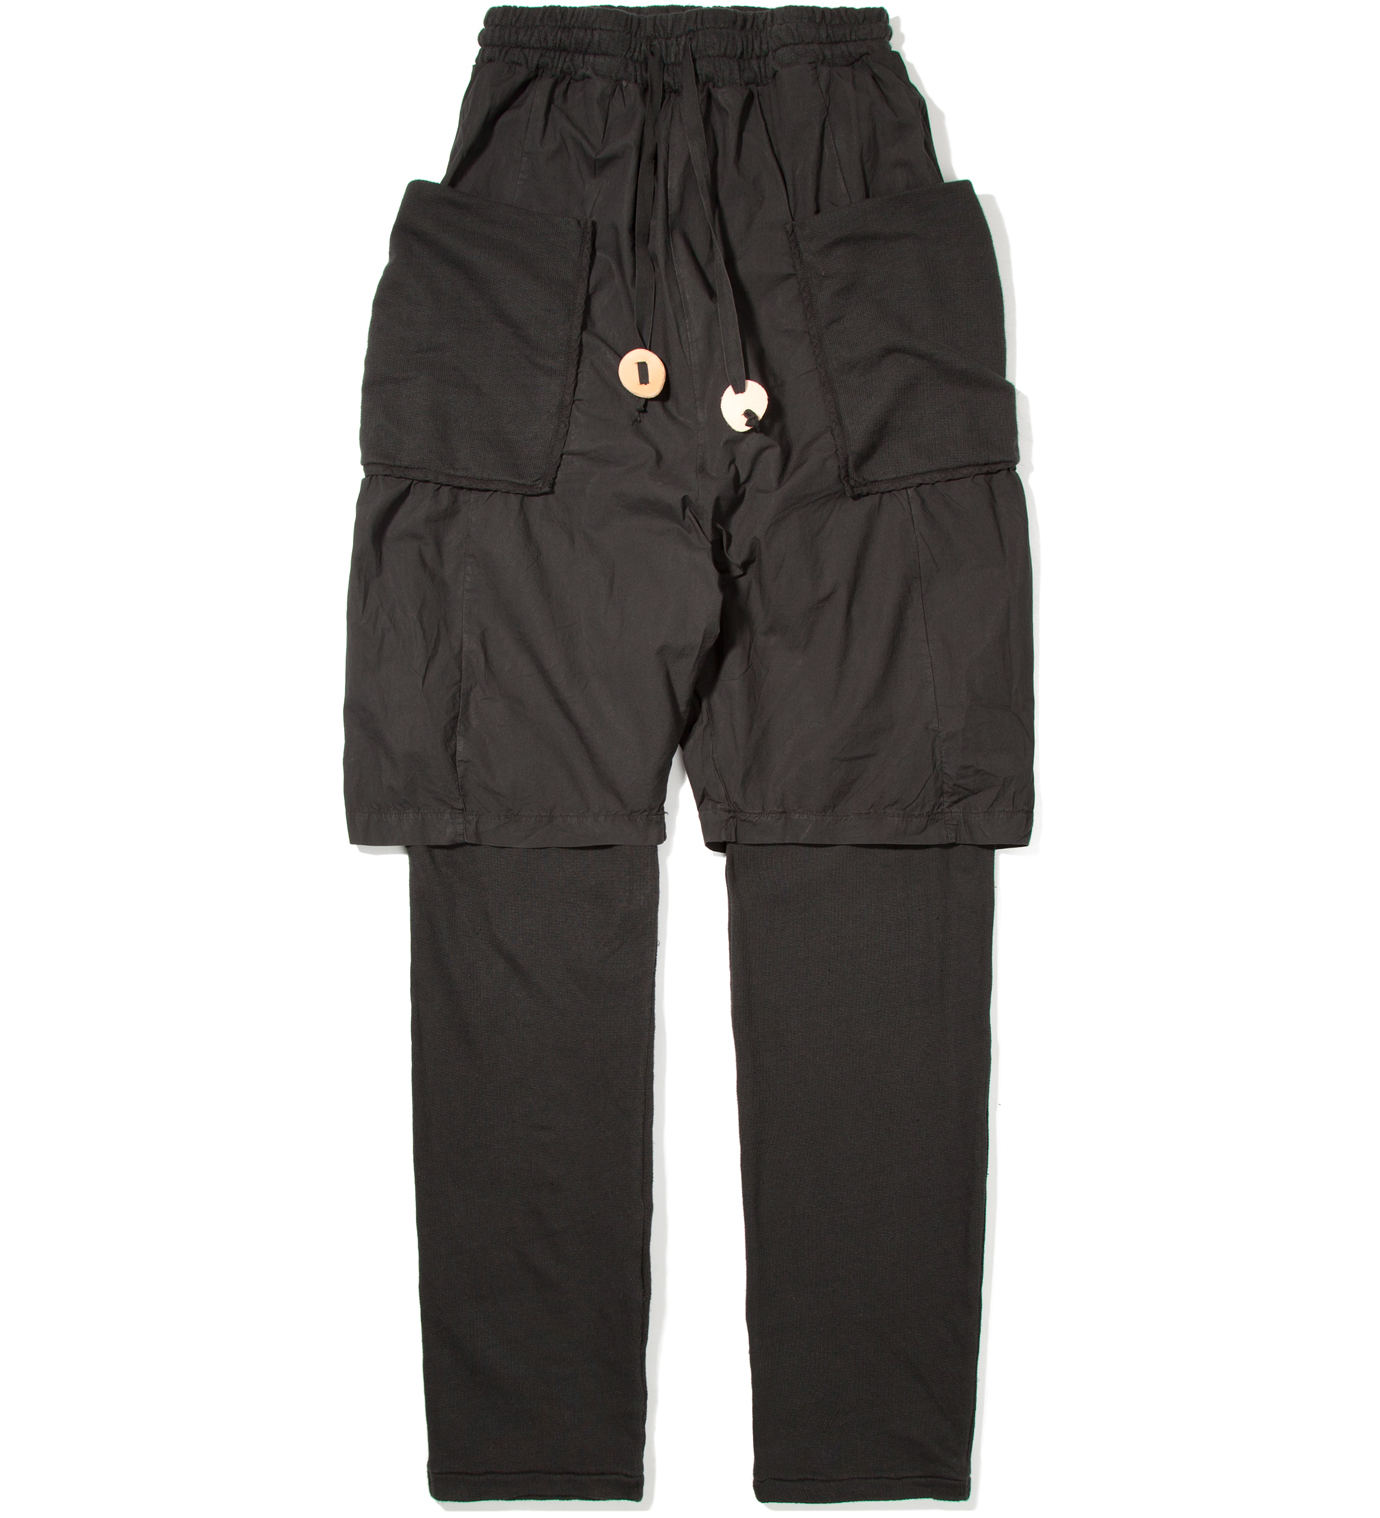 SILENT DAMIR DOMA Black Pelly Double Layered Sweatpant